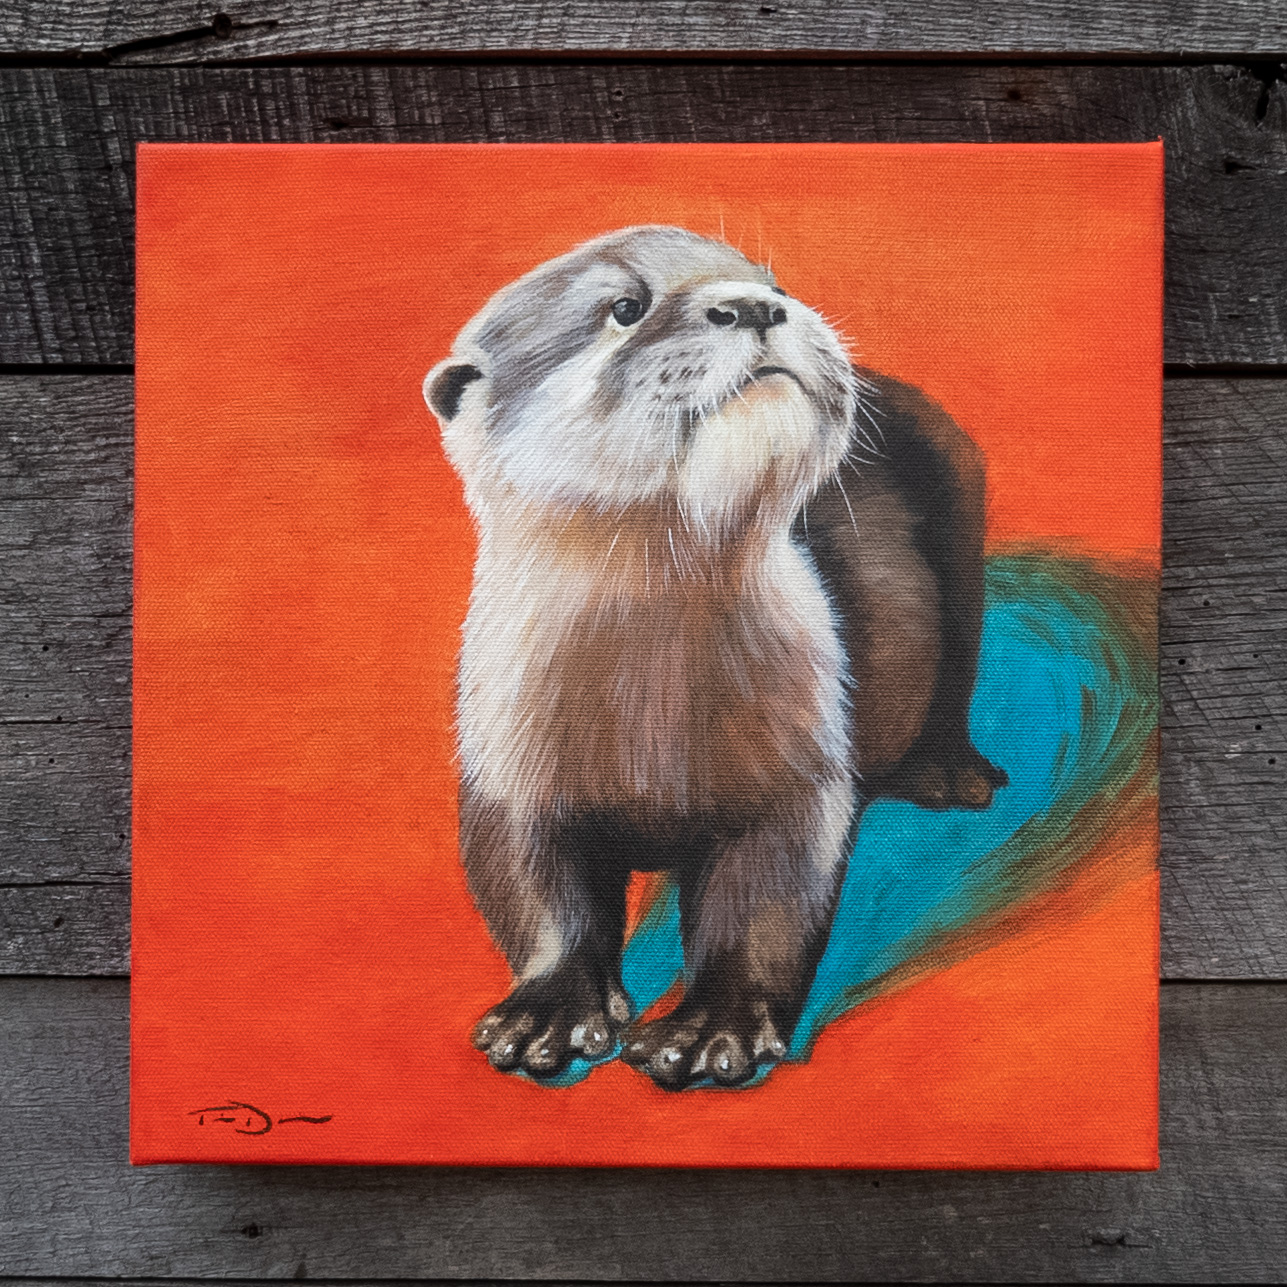 The Hopeful Otter - Original oil painting by wildlife artist Timothy Davison of the Davison Art Company featuring an Asian small-clawed otter. As the most hopeful color, he is looking up while surrounded by orange and leaving his blue shadow behind. © COPYRIGHT TIMOTHY DAVISON